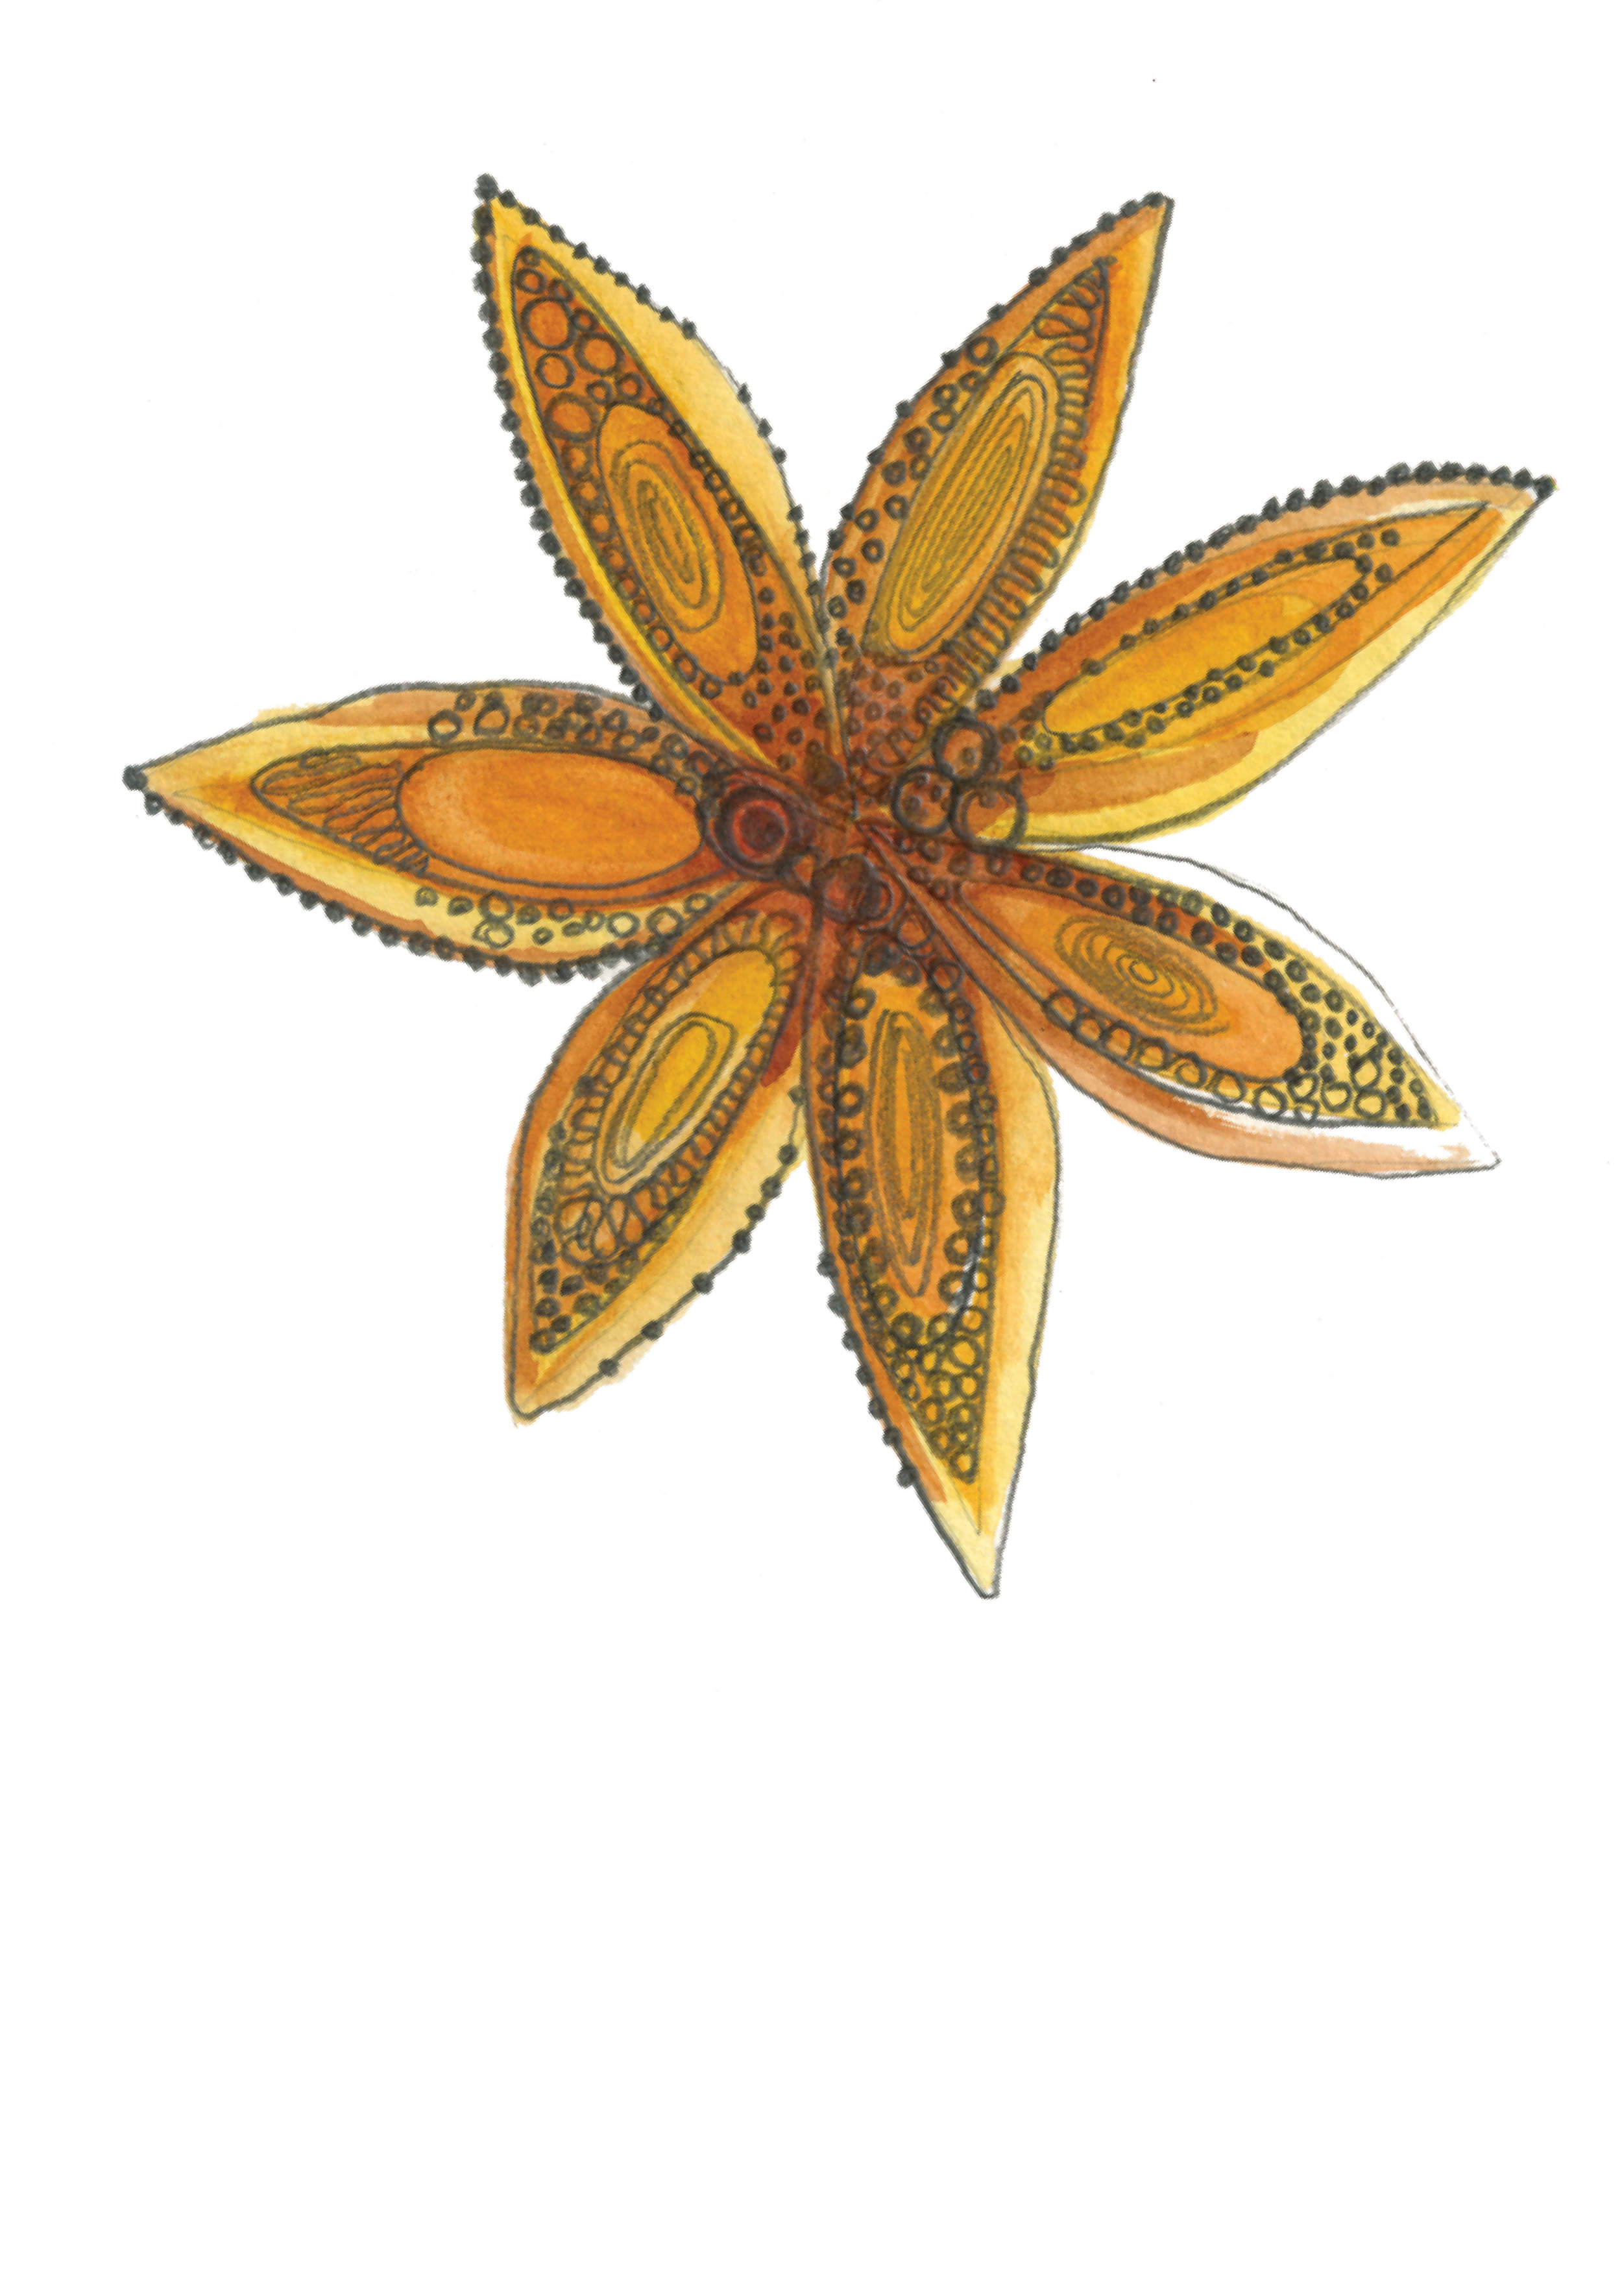 Star Anise by Bridget Melling-Williams